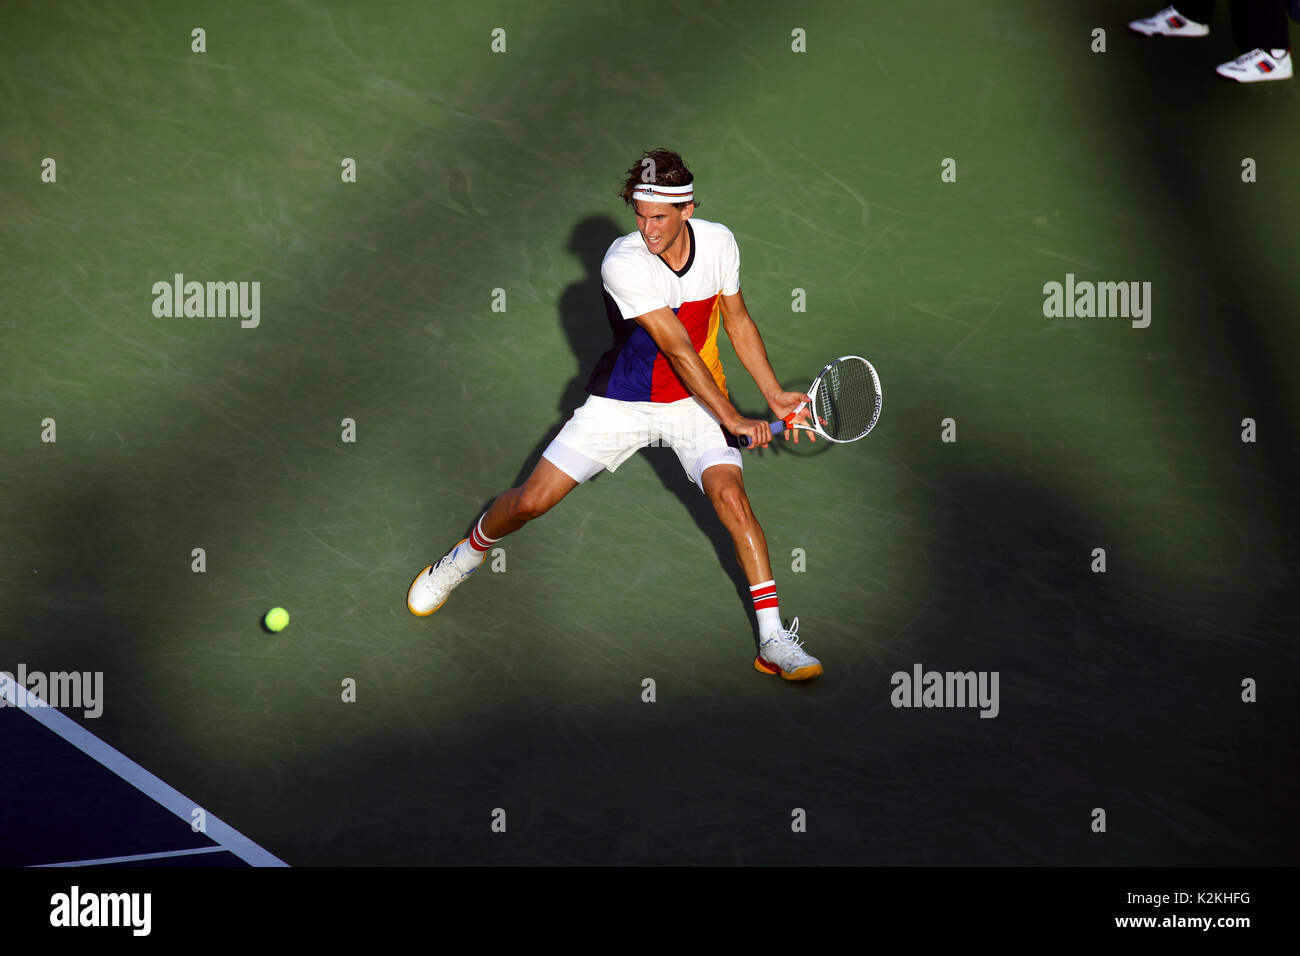 New York, United States. 31st Aug, 2017. US Open Tennis: New York, 31 August, 2017 - Austria's Dominic Thiem - Stock Image